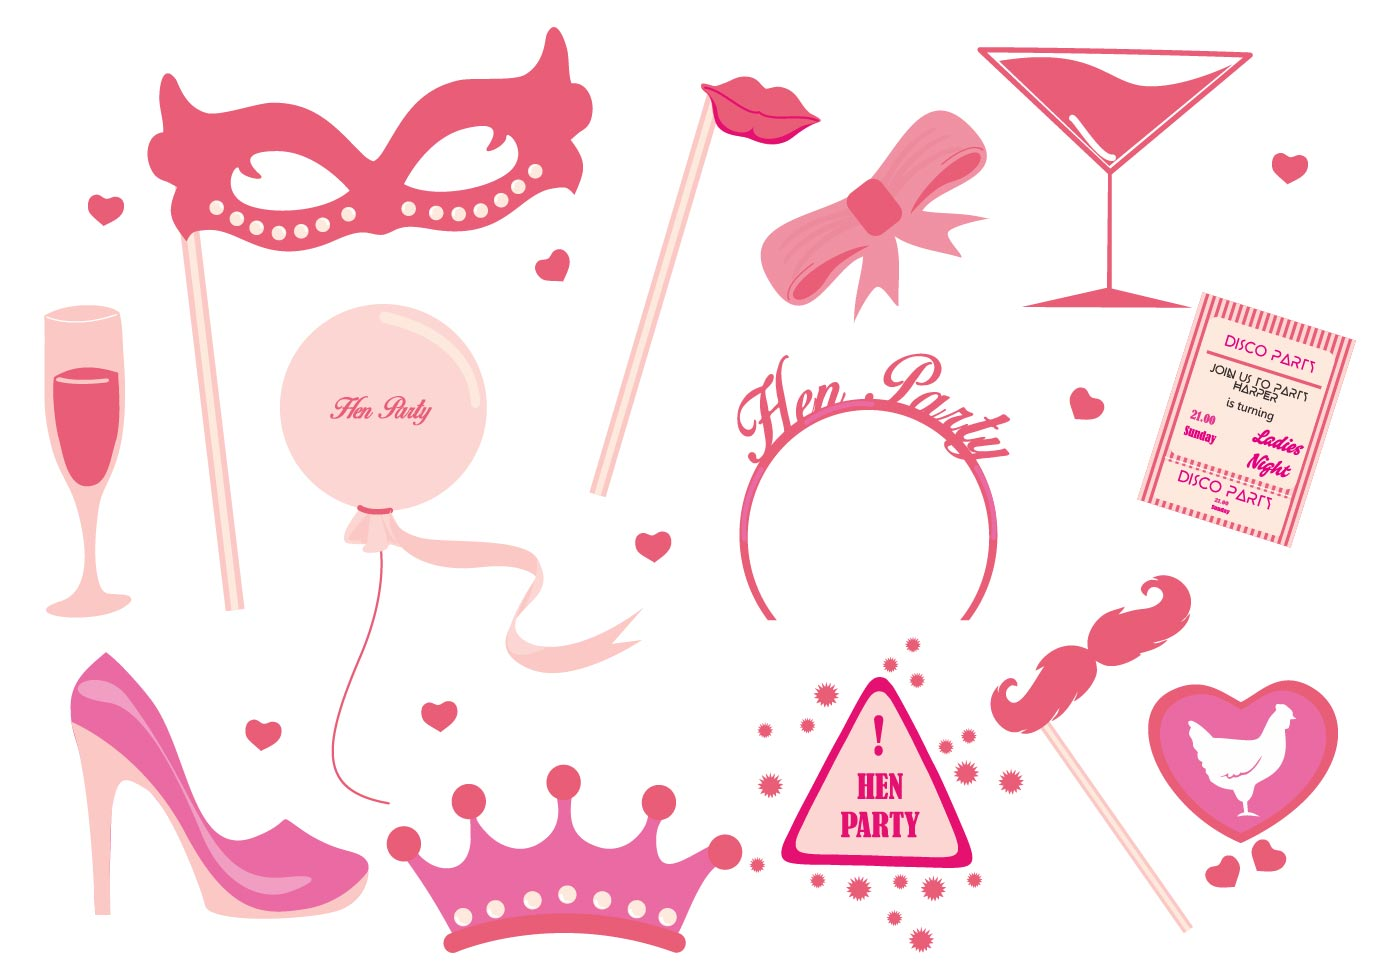 Hen Party Ladies Night Party Vector - Download Free Vector ...